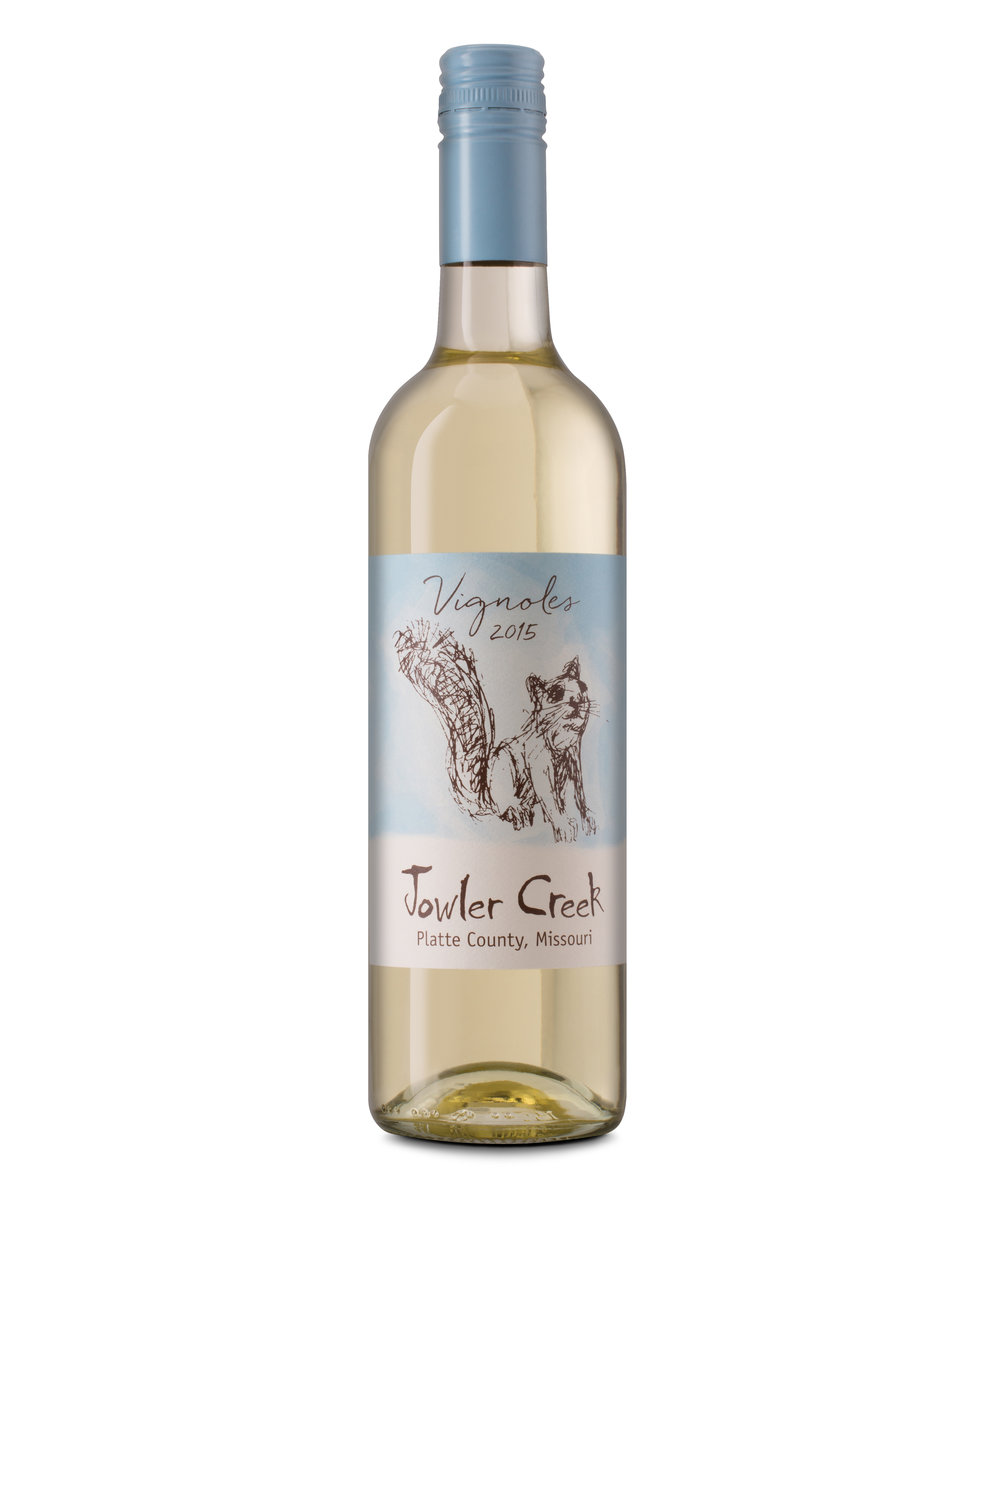 Jowler Creek Winery  makes the best Vignoles wine in the Midwest and Missouri.  Jowler Creek  Vignoles wine is made with estate grown grapes from Jowler Creek Winery's  sustainable vineyard  located  near Weston Missouri, Kansas City Missouri and St. Joseph Missouri.